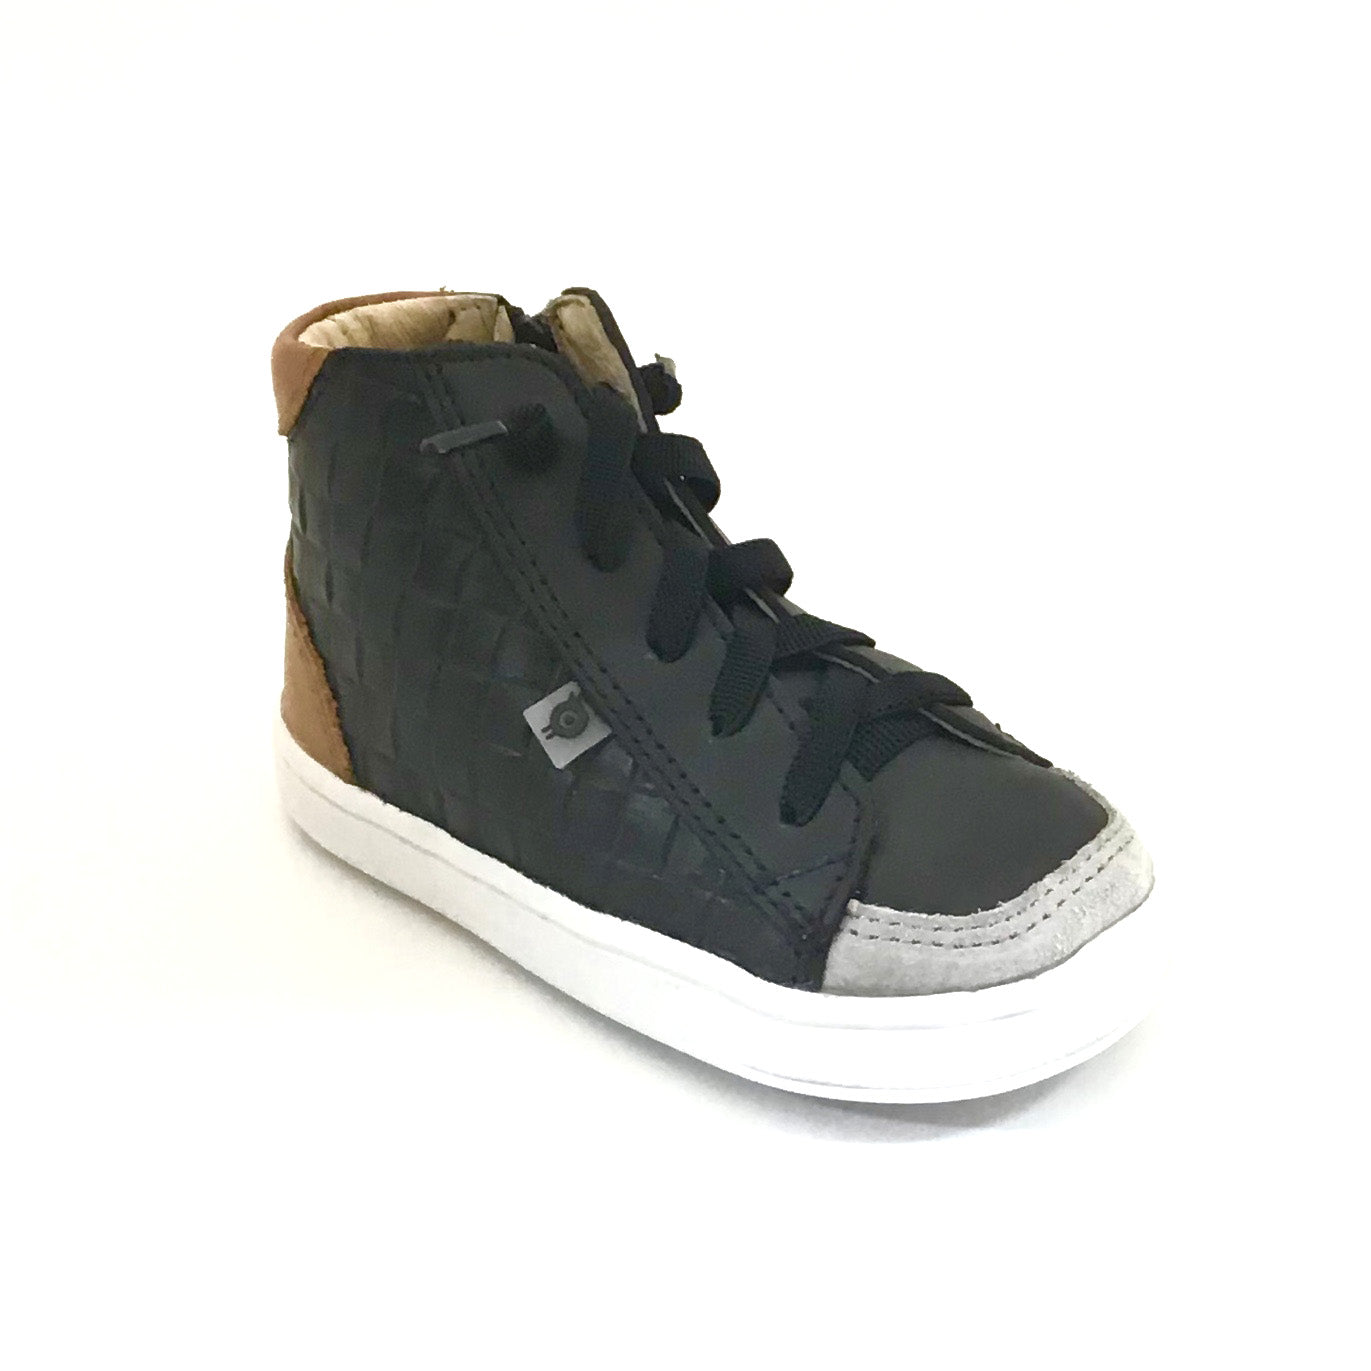 Old Soles Black Weave High Top Sneaker with Laces